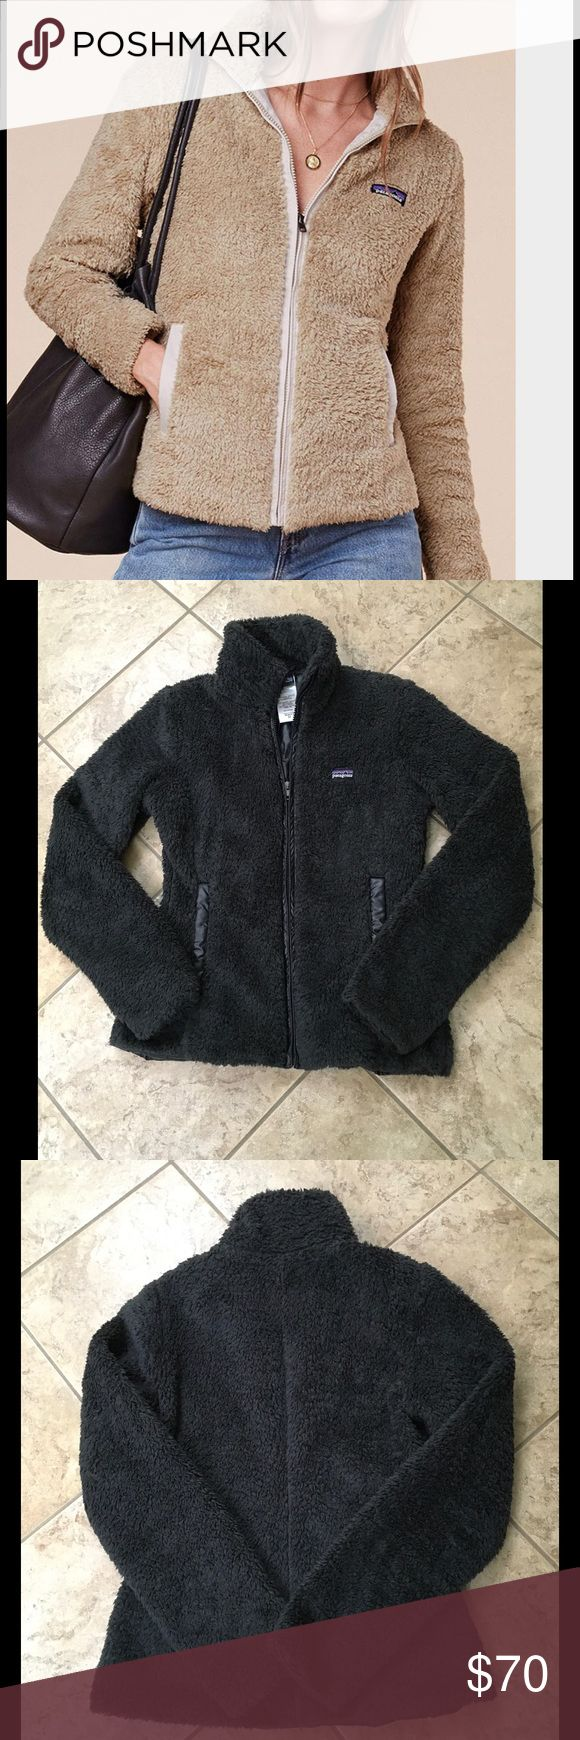 Patagonia fleece jacket Sz XS In perfect condition beautiful warm and cozy jacket with stand up collar and pockets in color Forge Grey Patagonia Jackets & Coats Utility Jackets